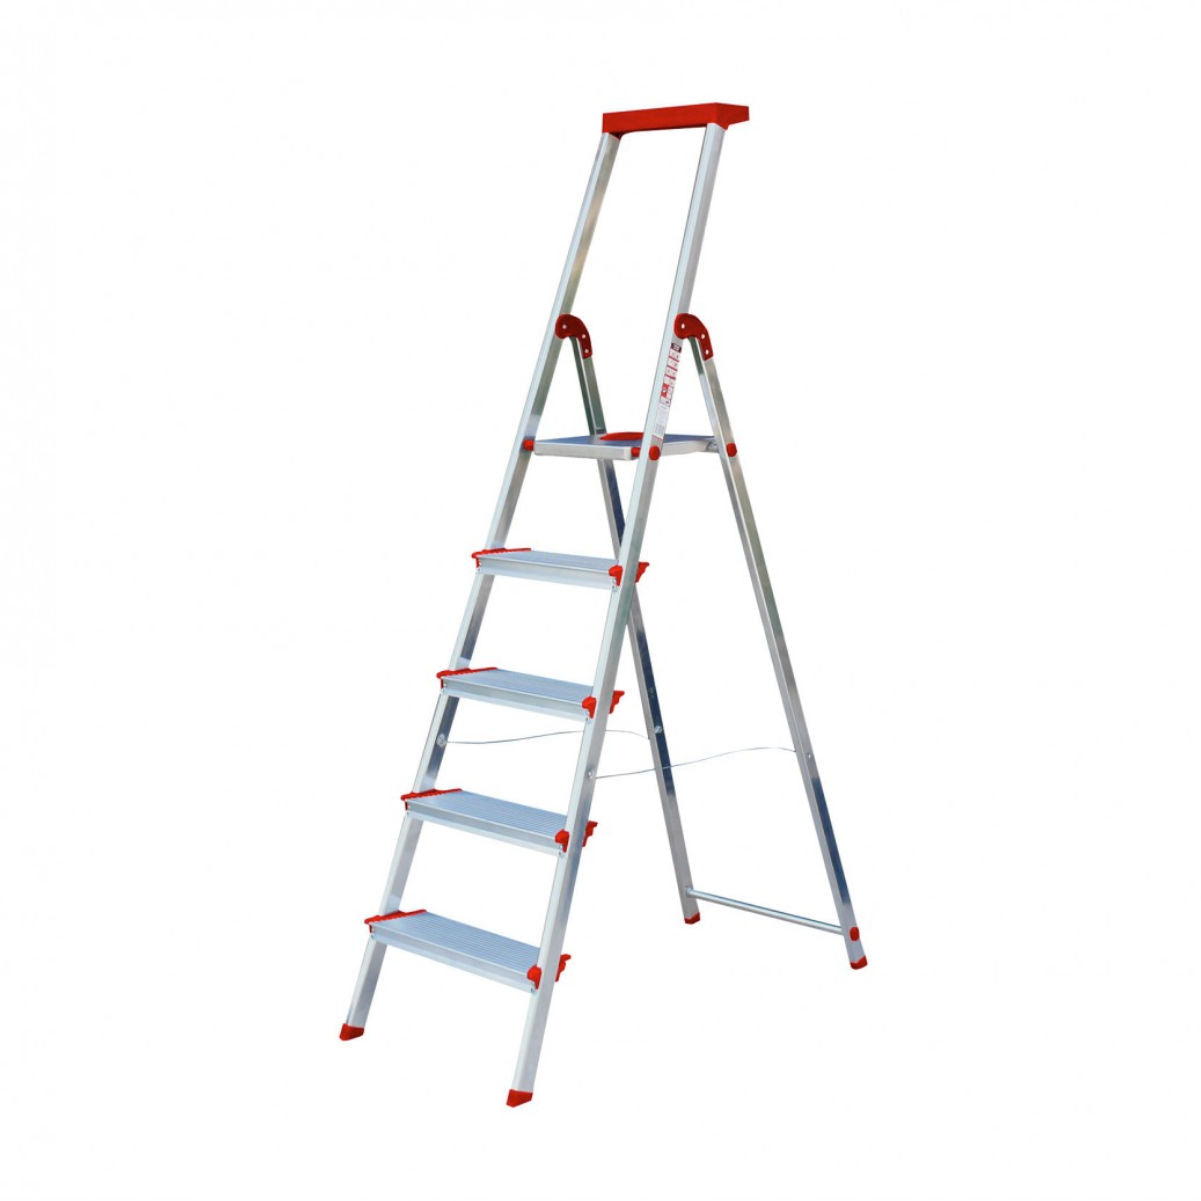 Rolser Brico 220 step ladder, 5 wide steps, aluminum